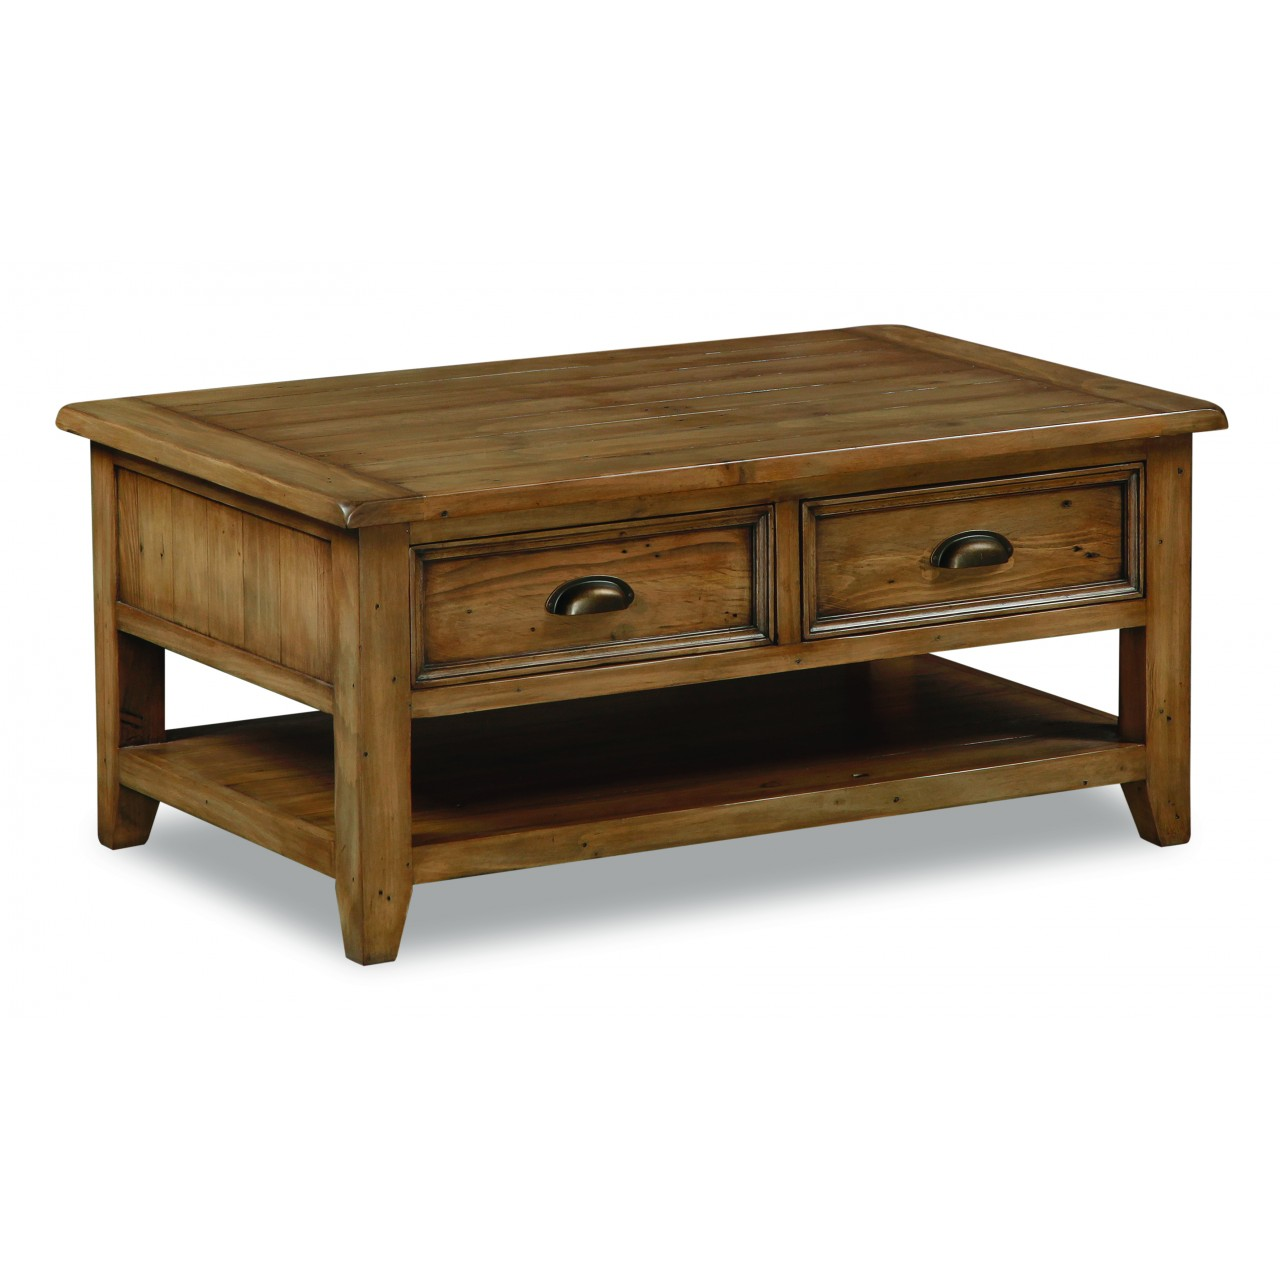 Tigress direct furniture and homewares Pine coffee table with drawers